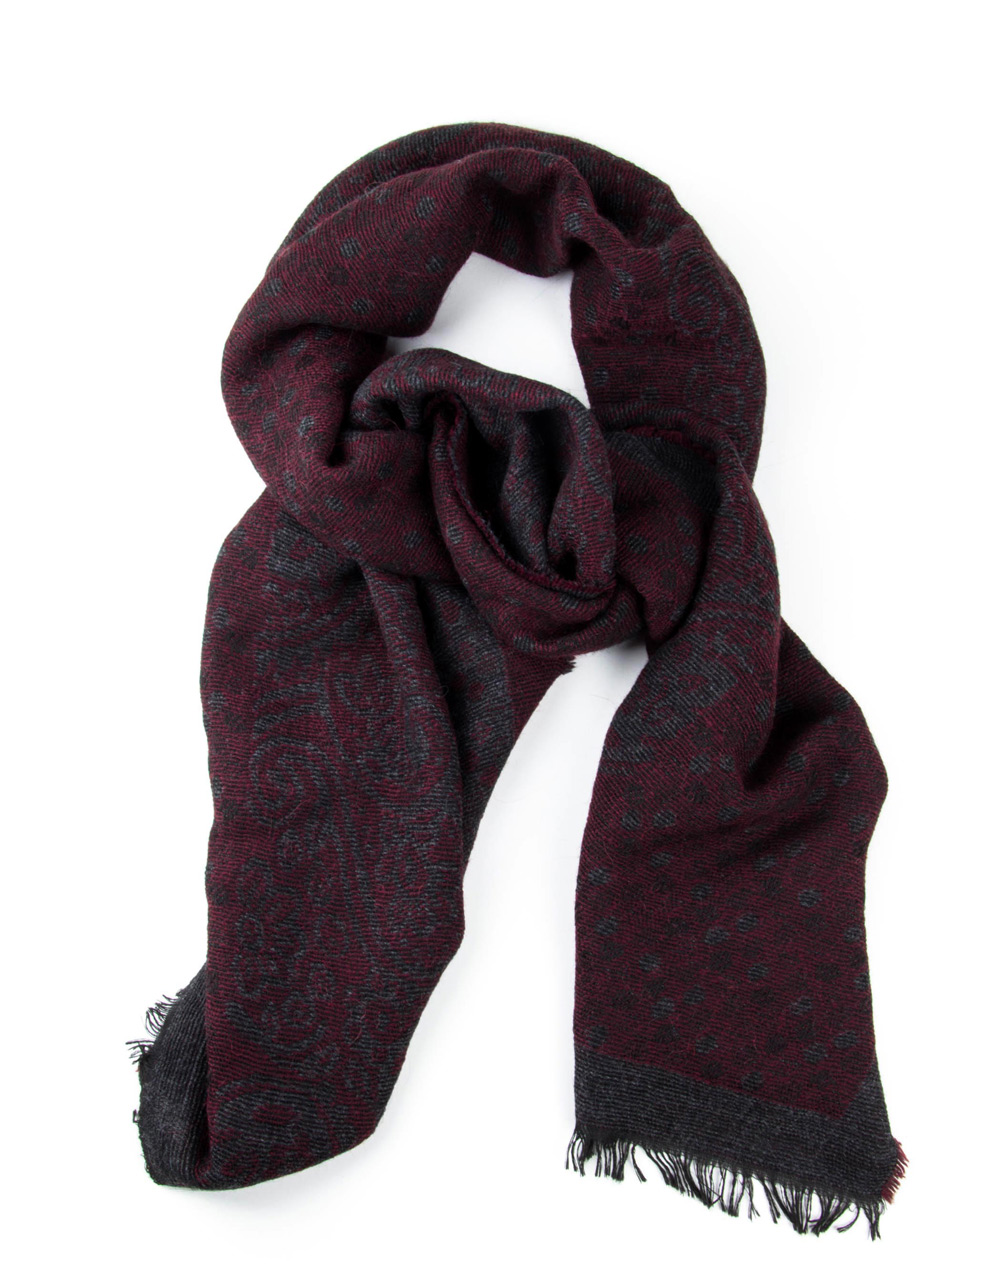 Bordo Grey fantasy foulard